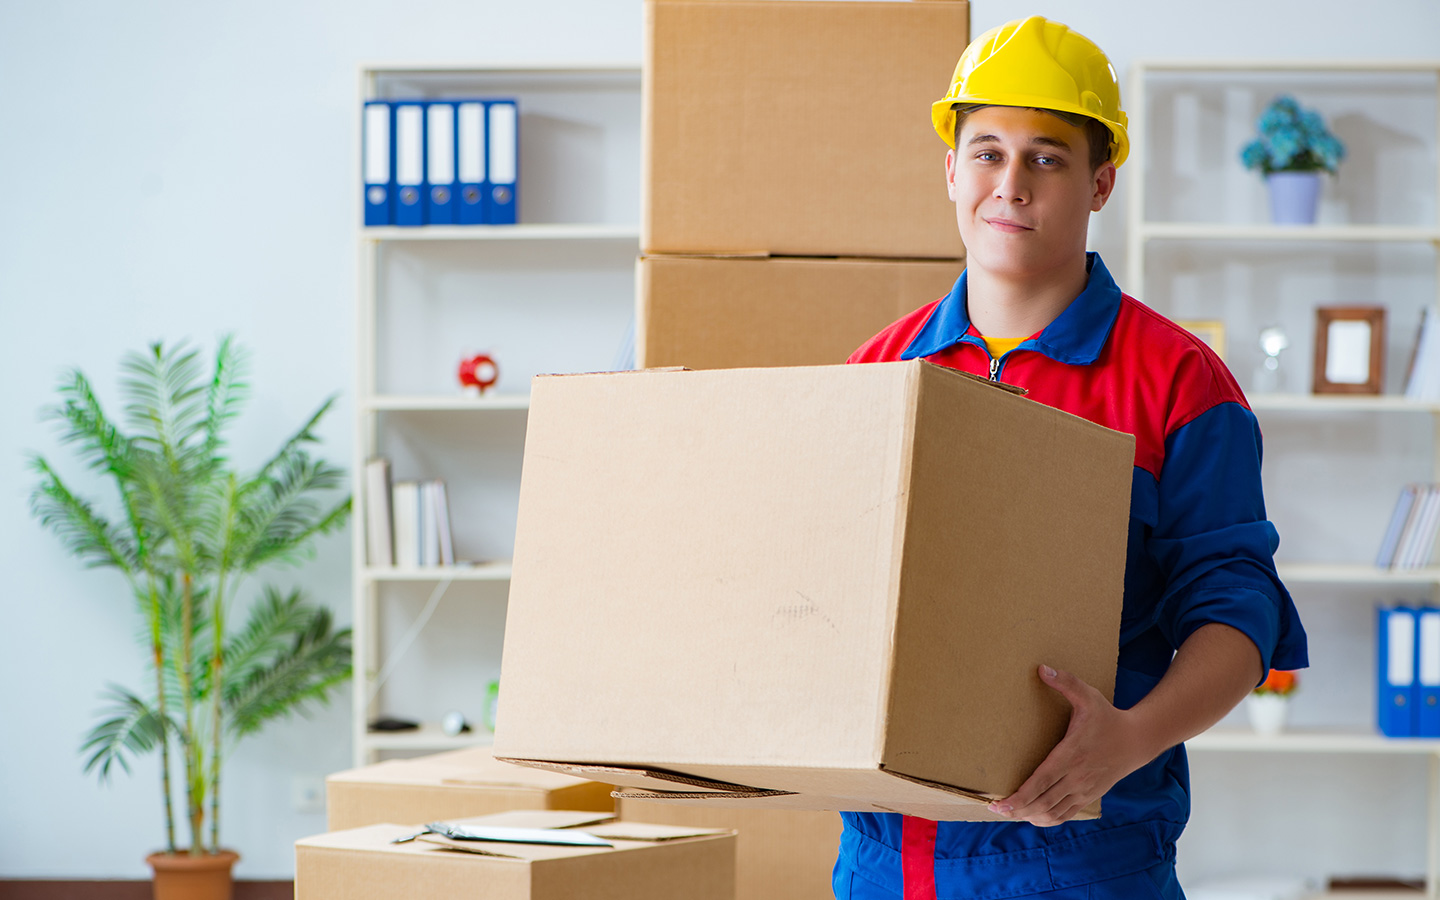 Comprehensive guide for choosing Movers and Packers in Dubai - MyBayut